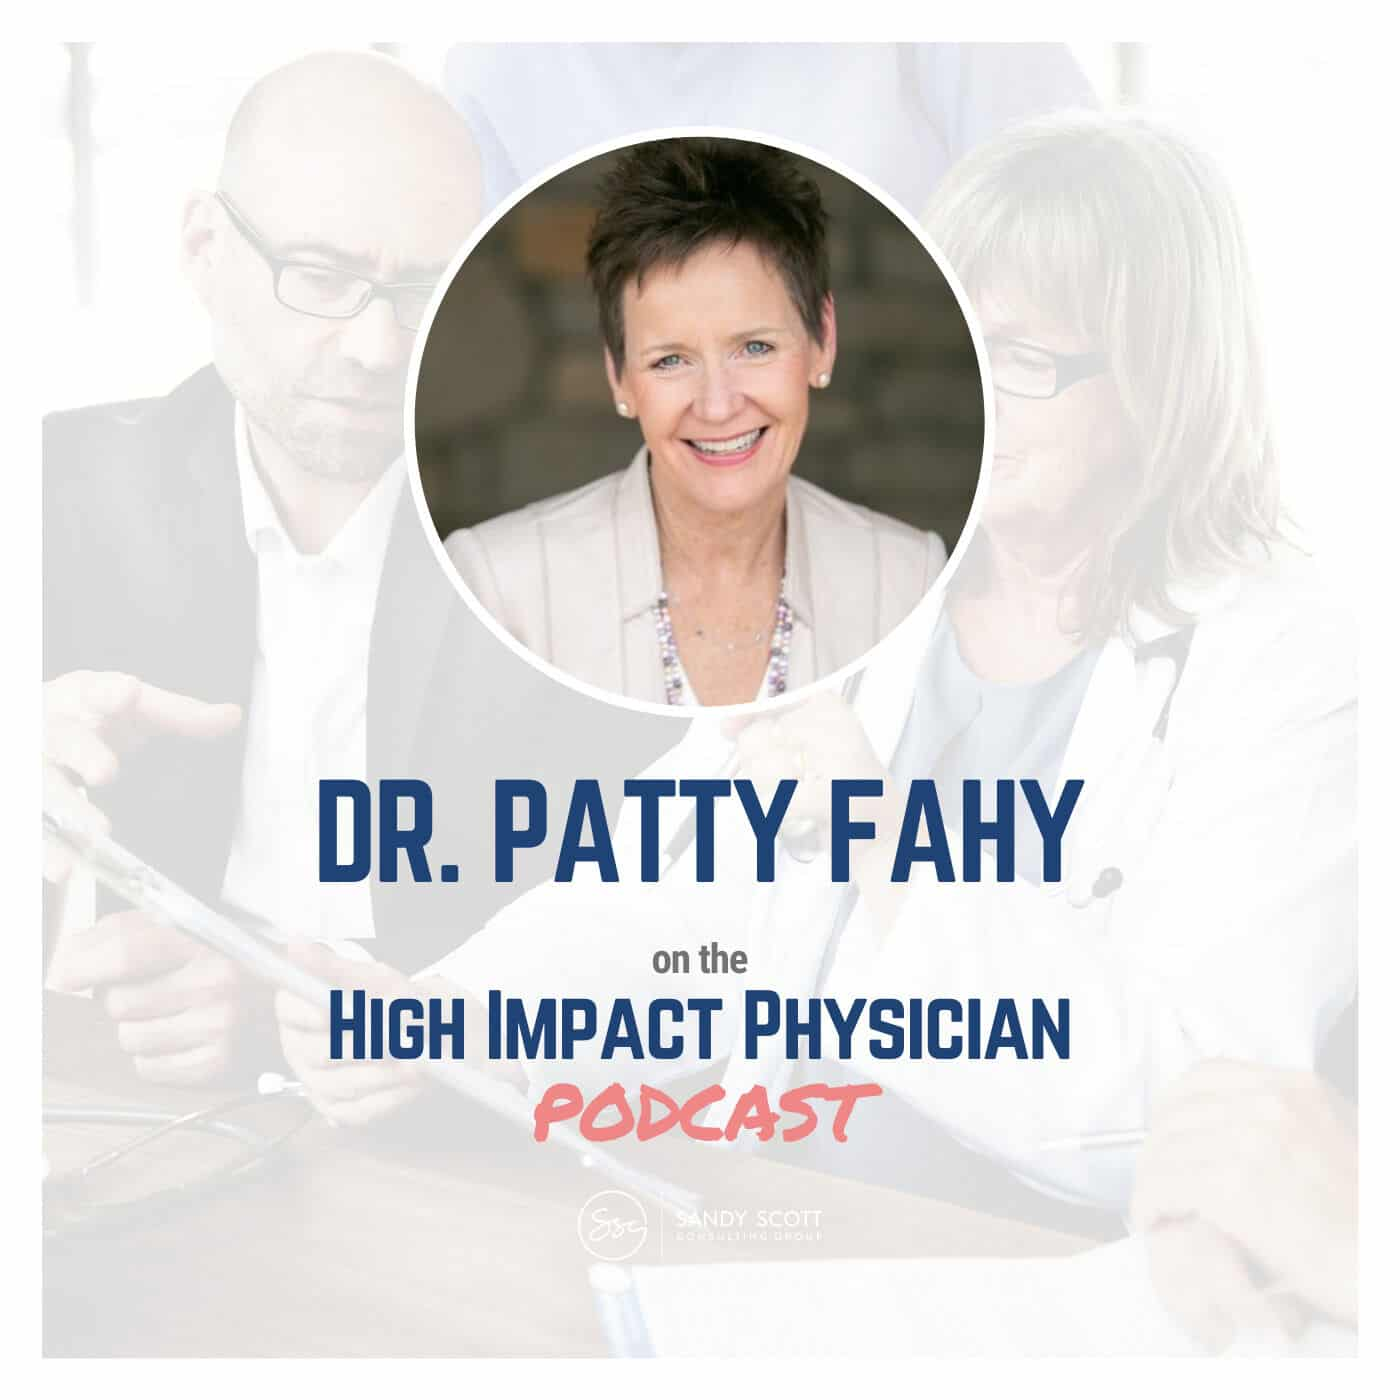 High Impact Physician Podcast